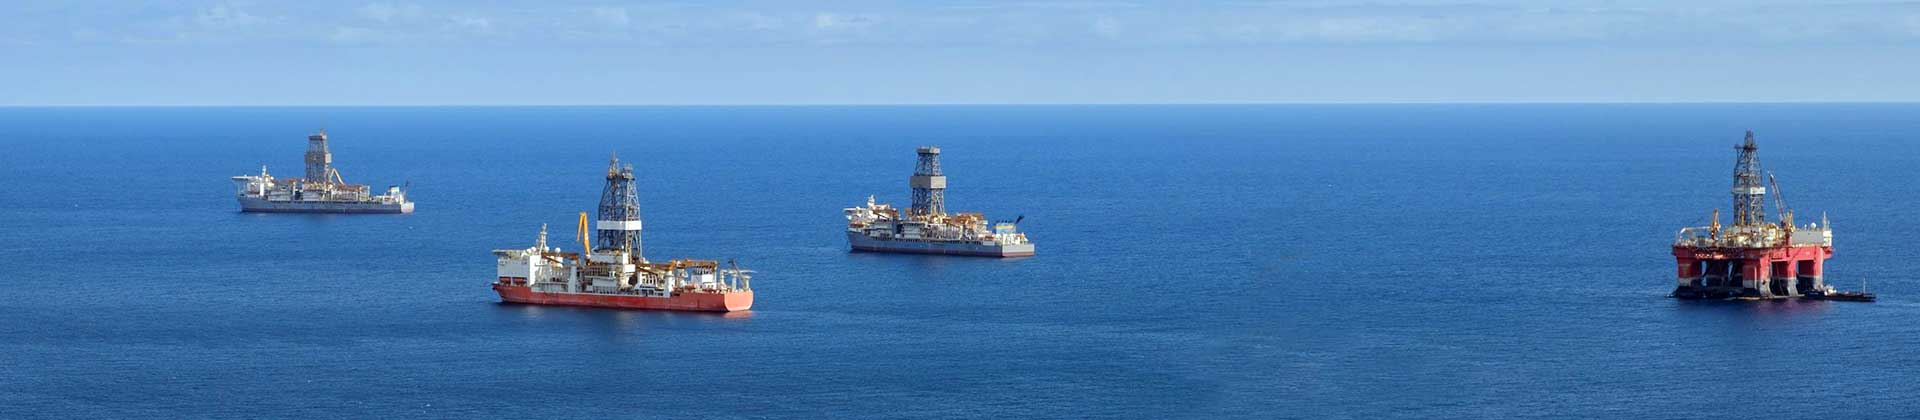 Offshore-drill-ships2